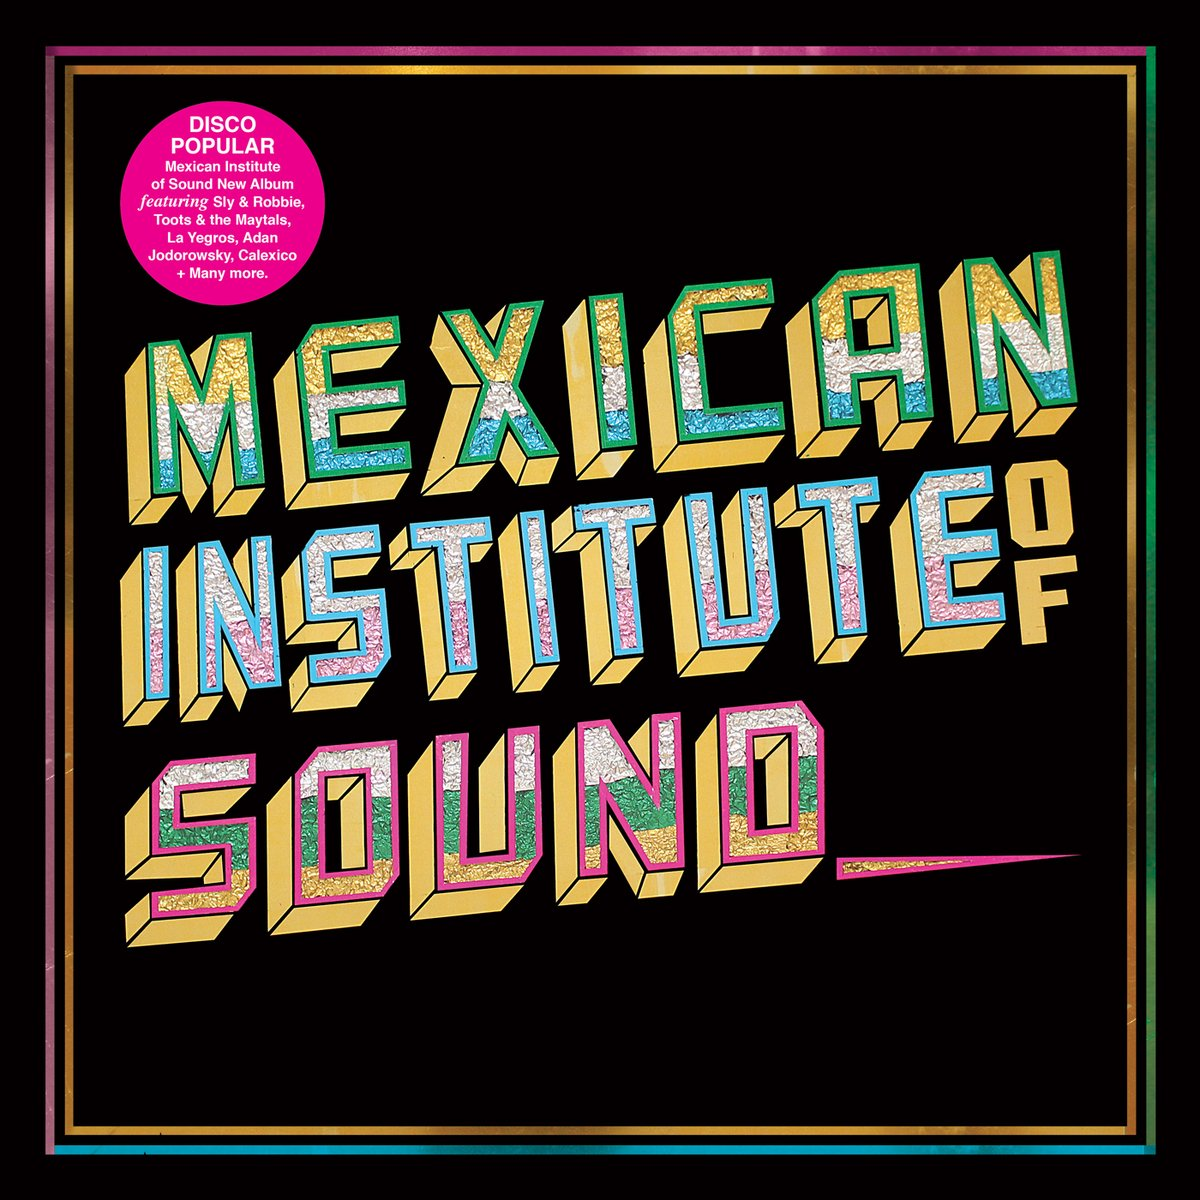 Instituto Mexicano del Sonido – Disco Popular